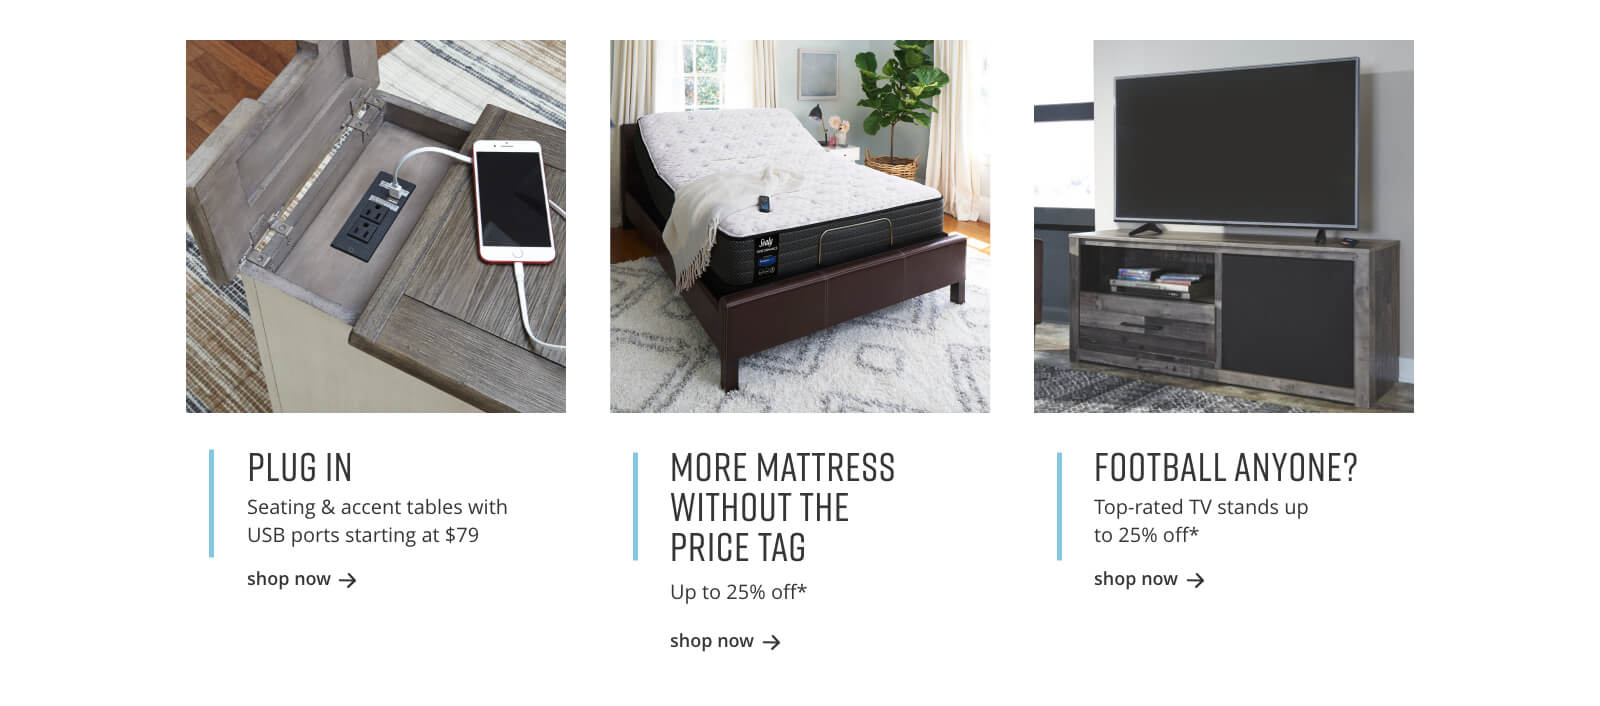 Seating and Accent Tables with USB Ports, Mattresses up to 25% off*, Top-rate TV Stands up to 25% off*